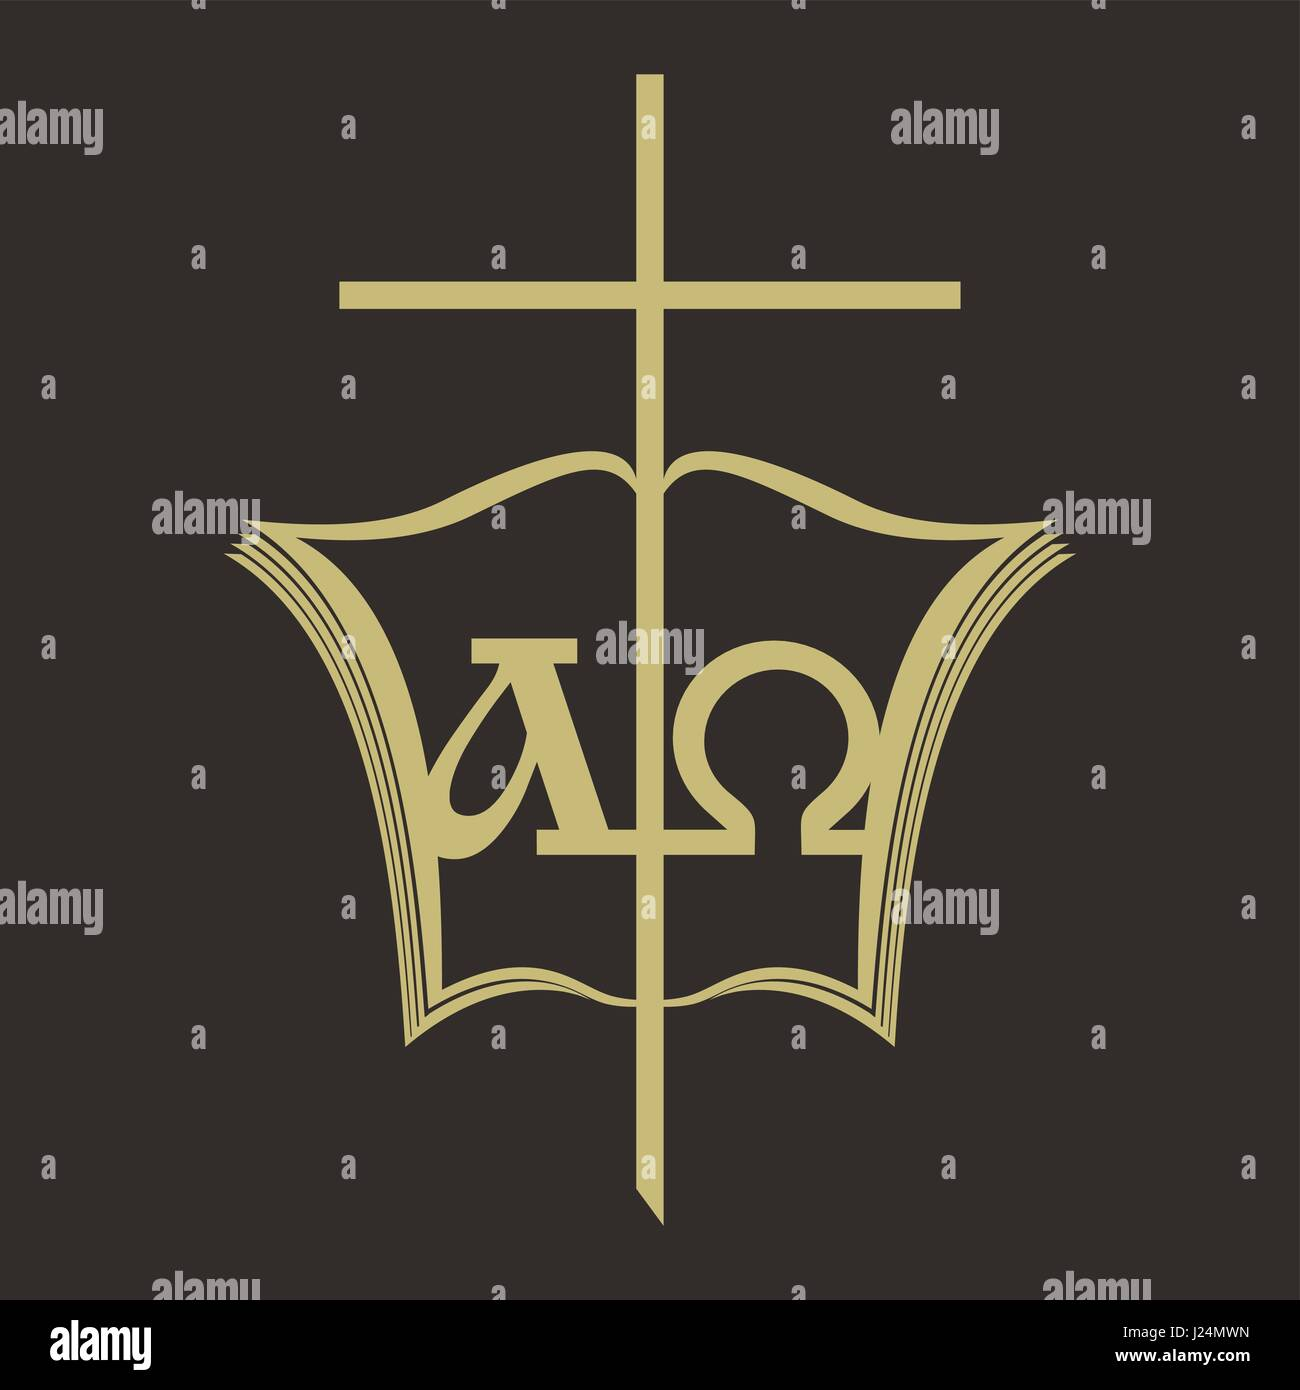 Church logo christian symbols open bible the cross of jesus church logo christian symbols open bible the cross of jesus alpha and omega buycottarizona